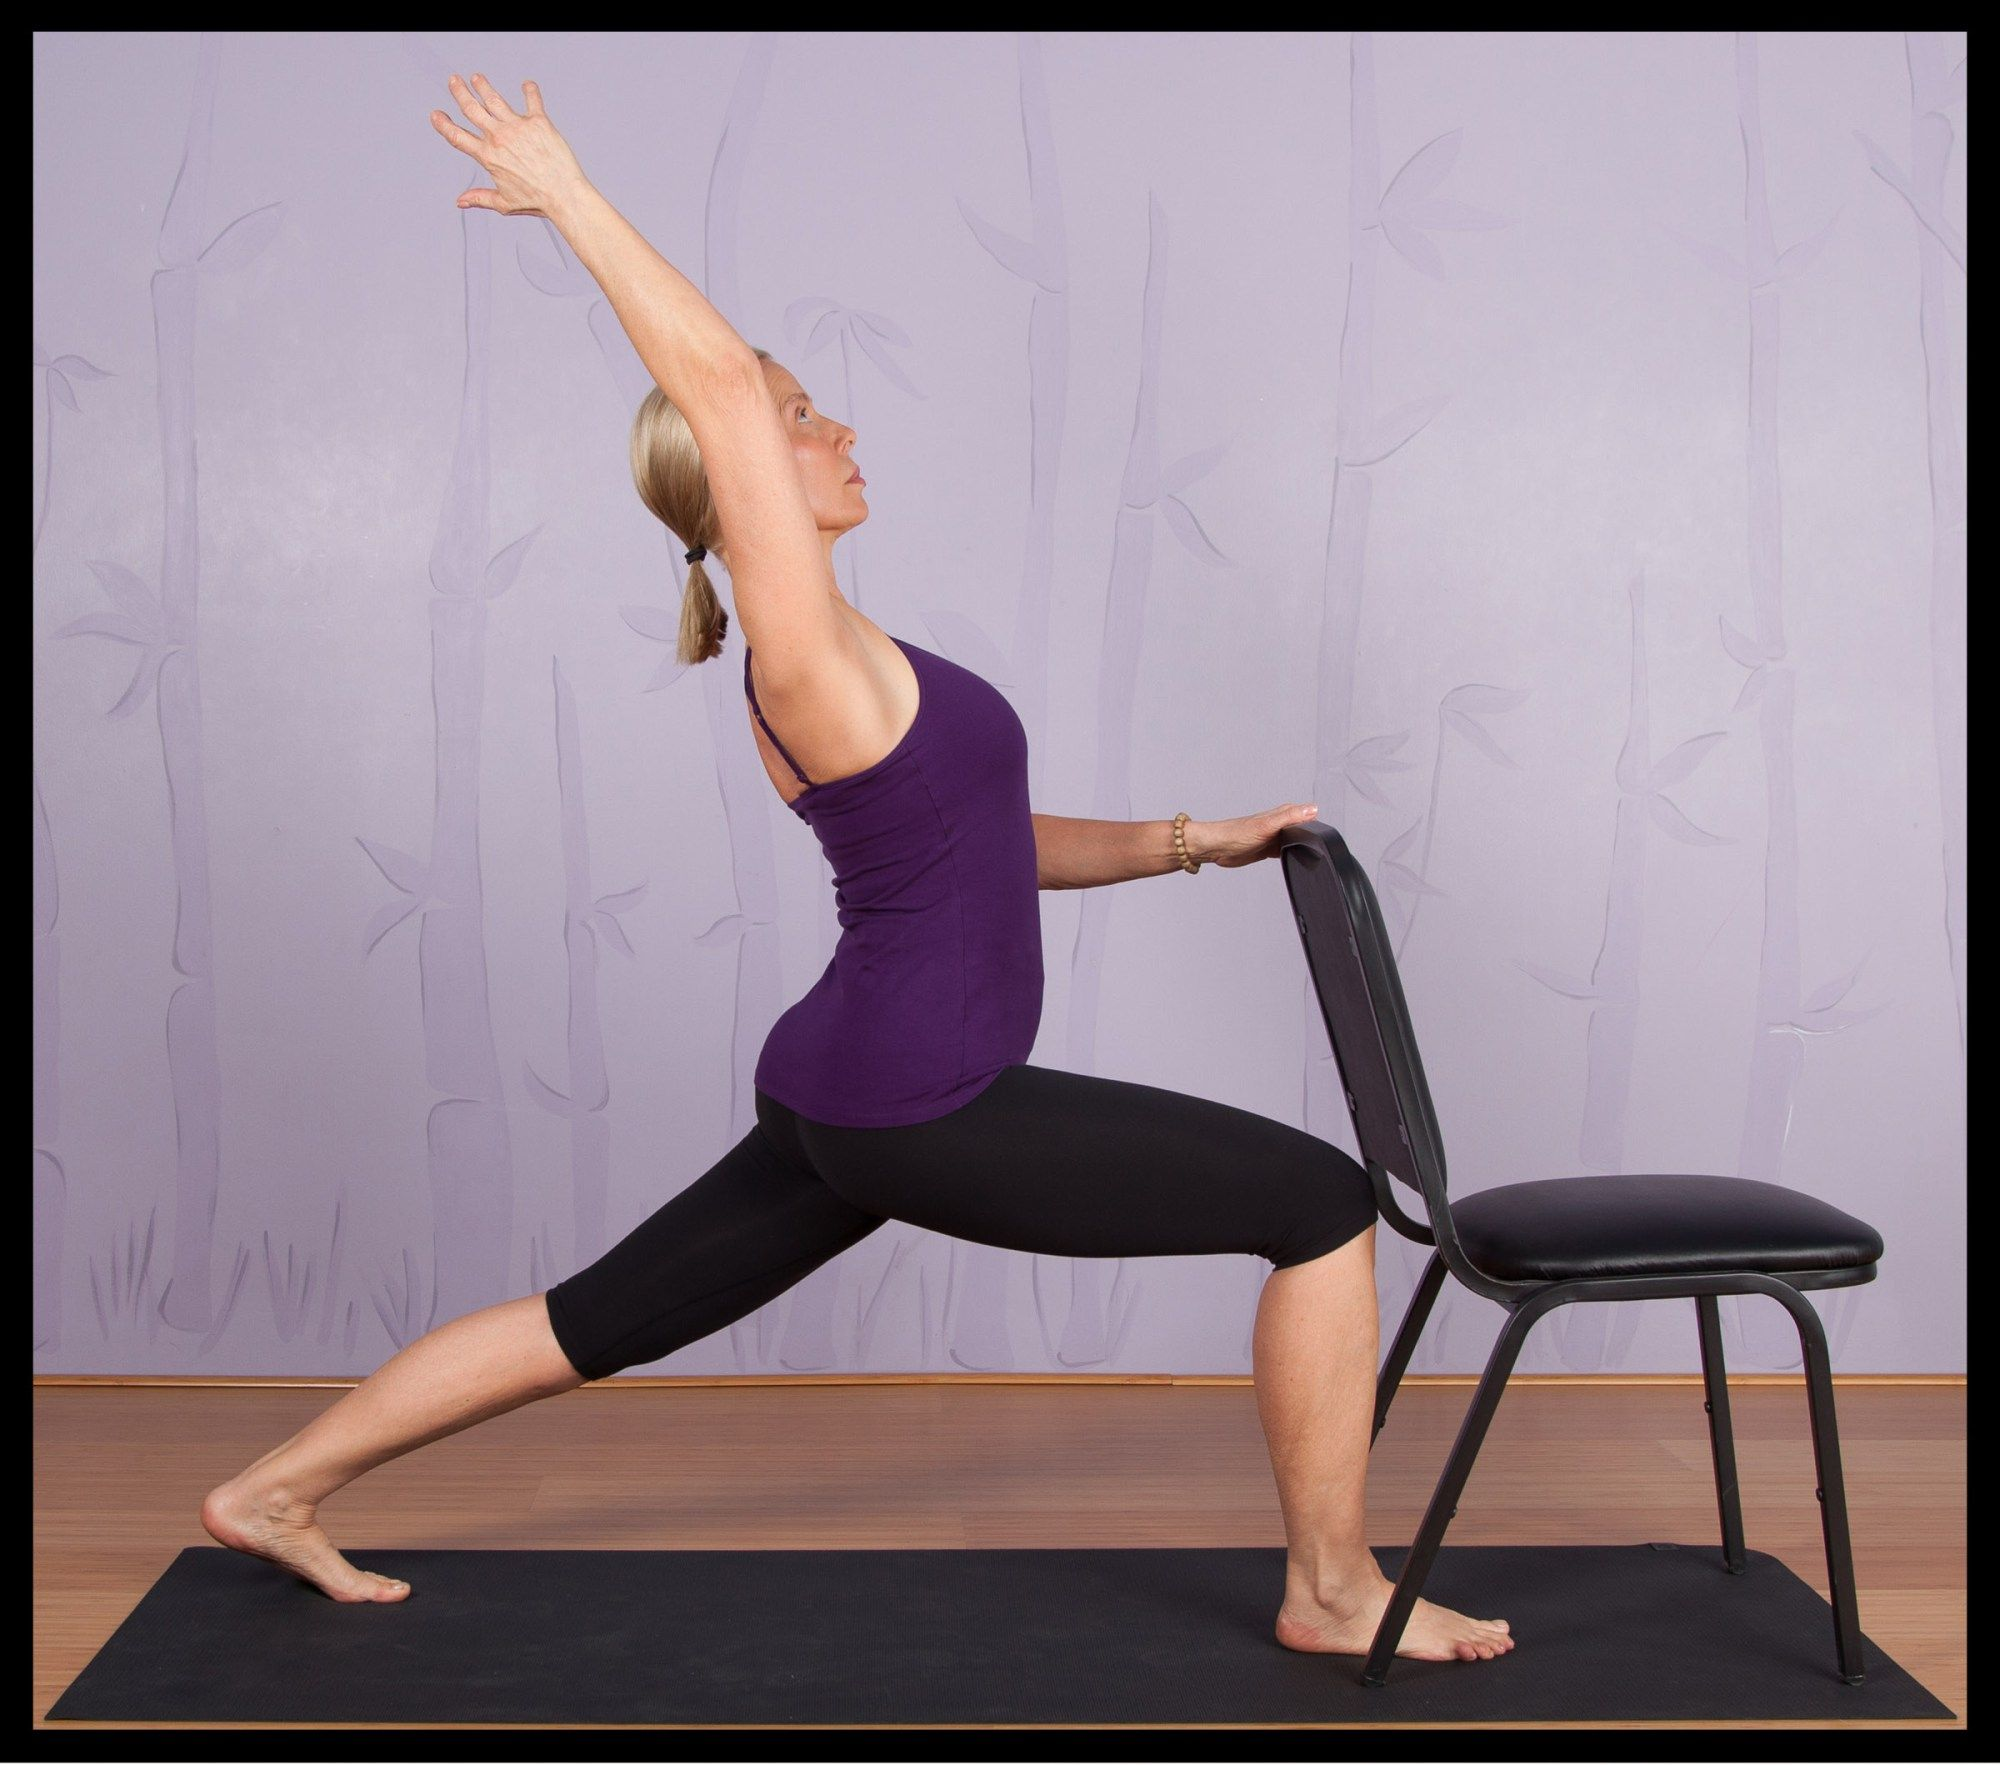 classes yoga studio chair innovative seniors wellness for